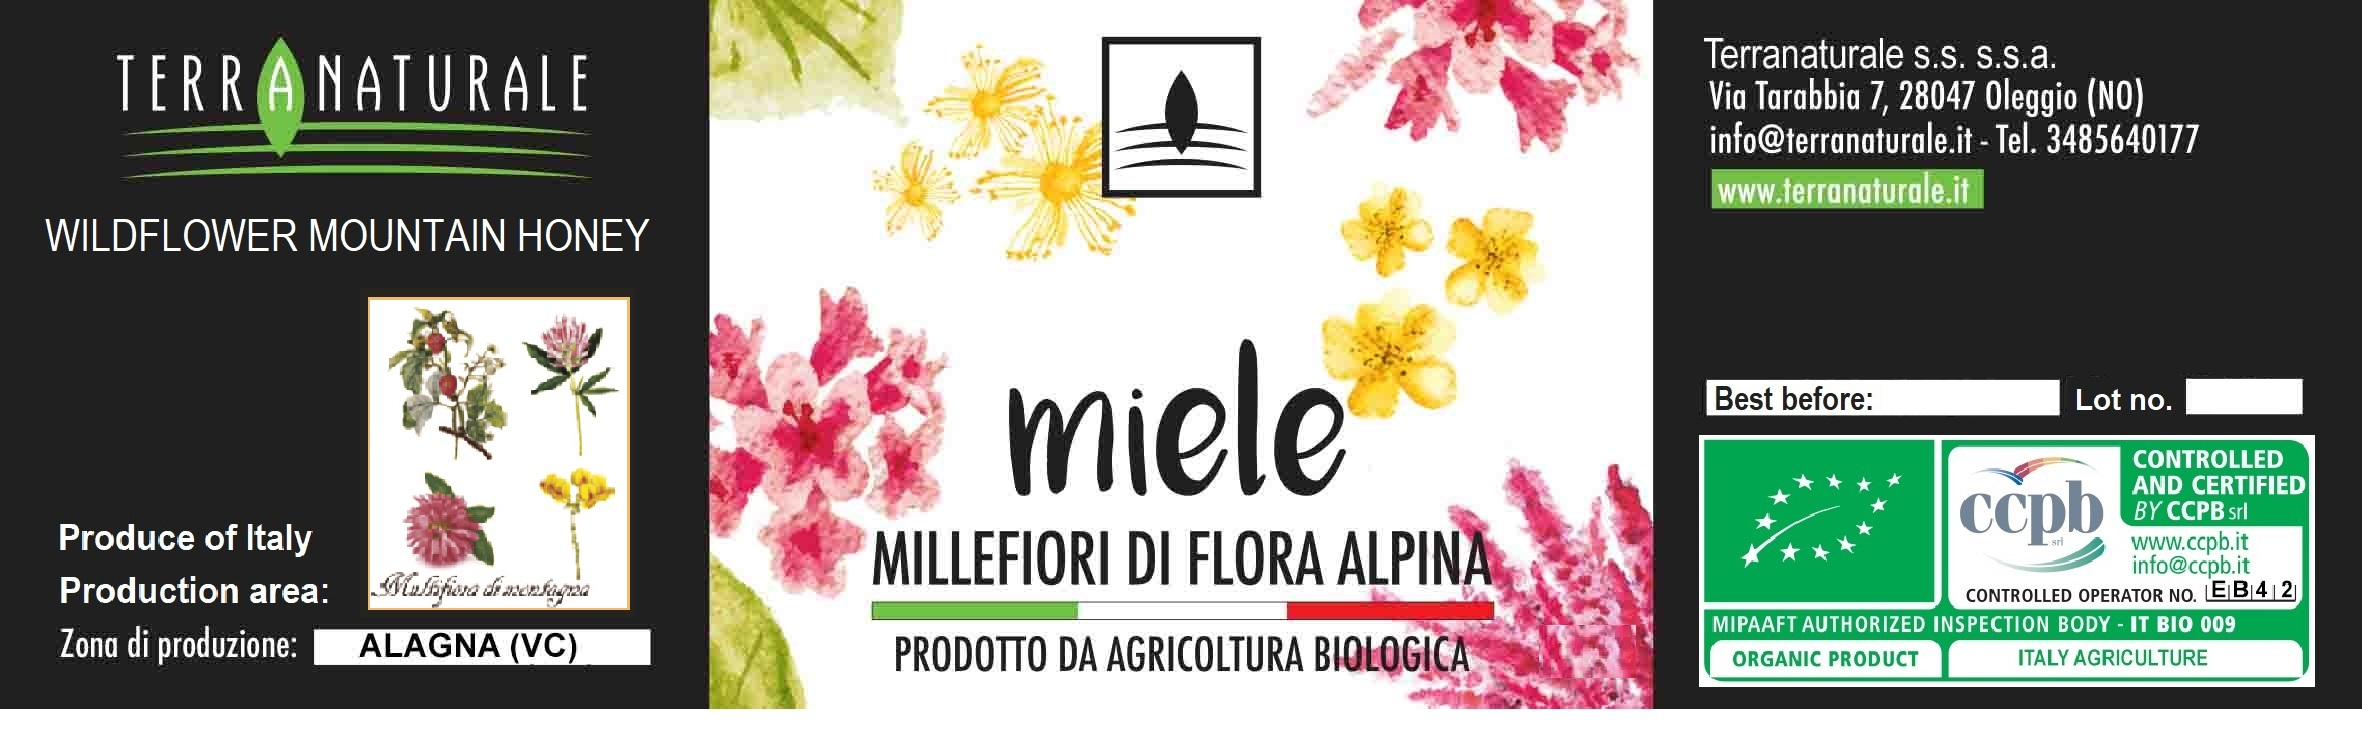 Organic Millefiori Flora Alpina Honey 250g